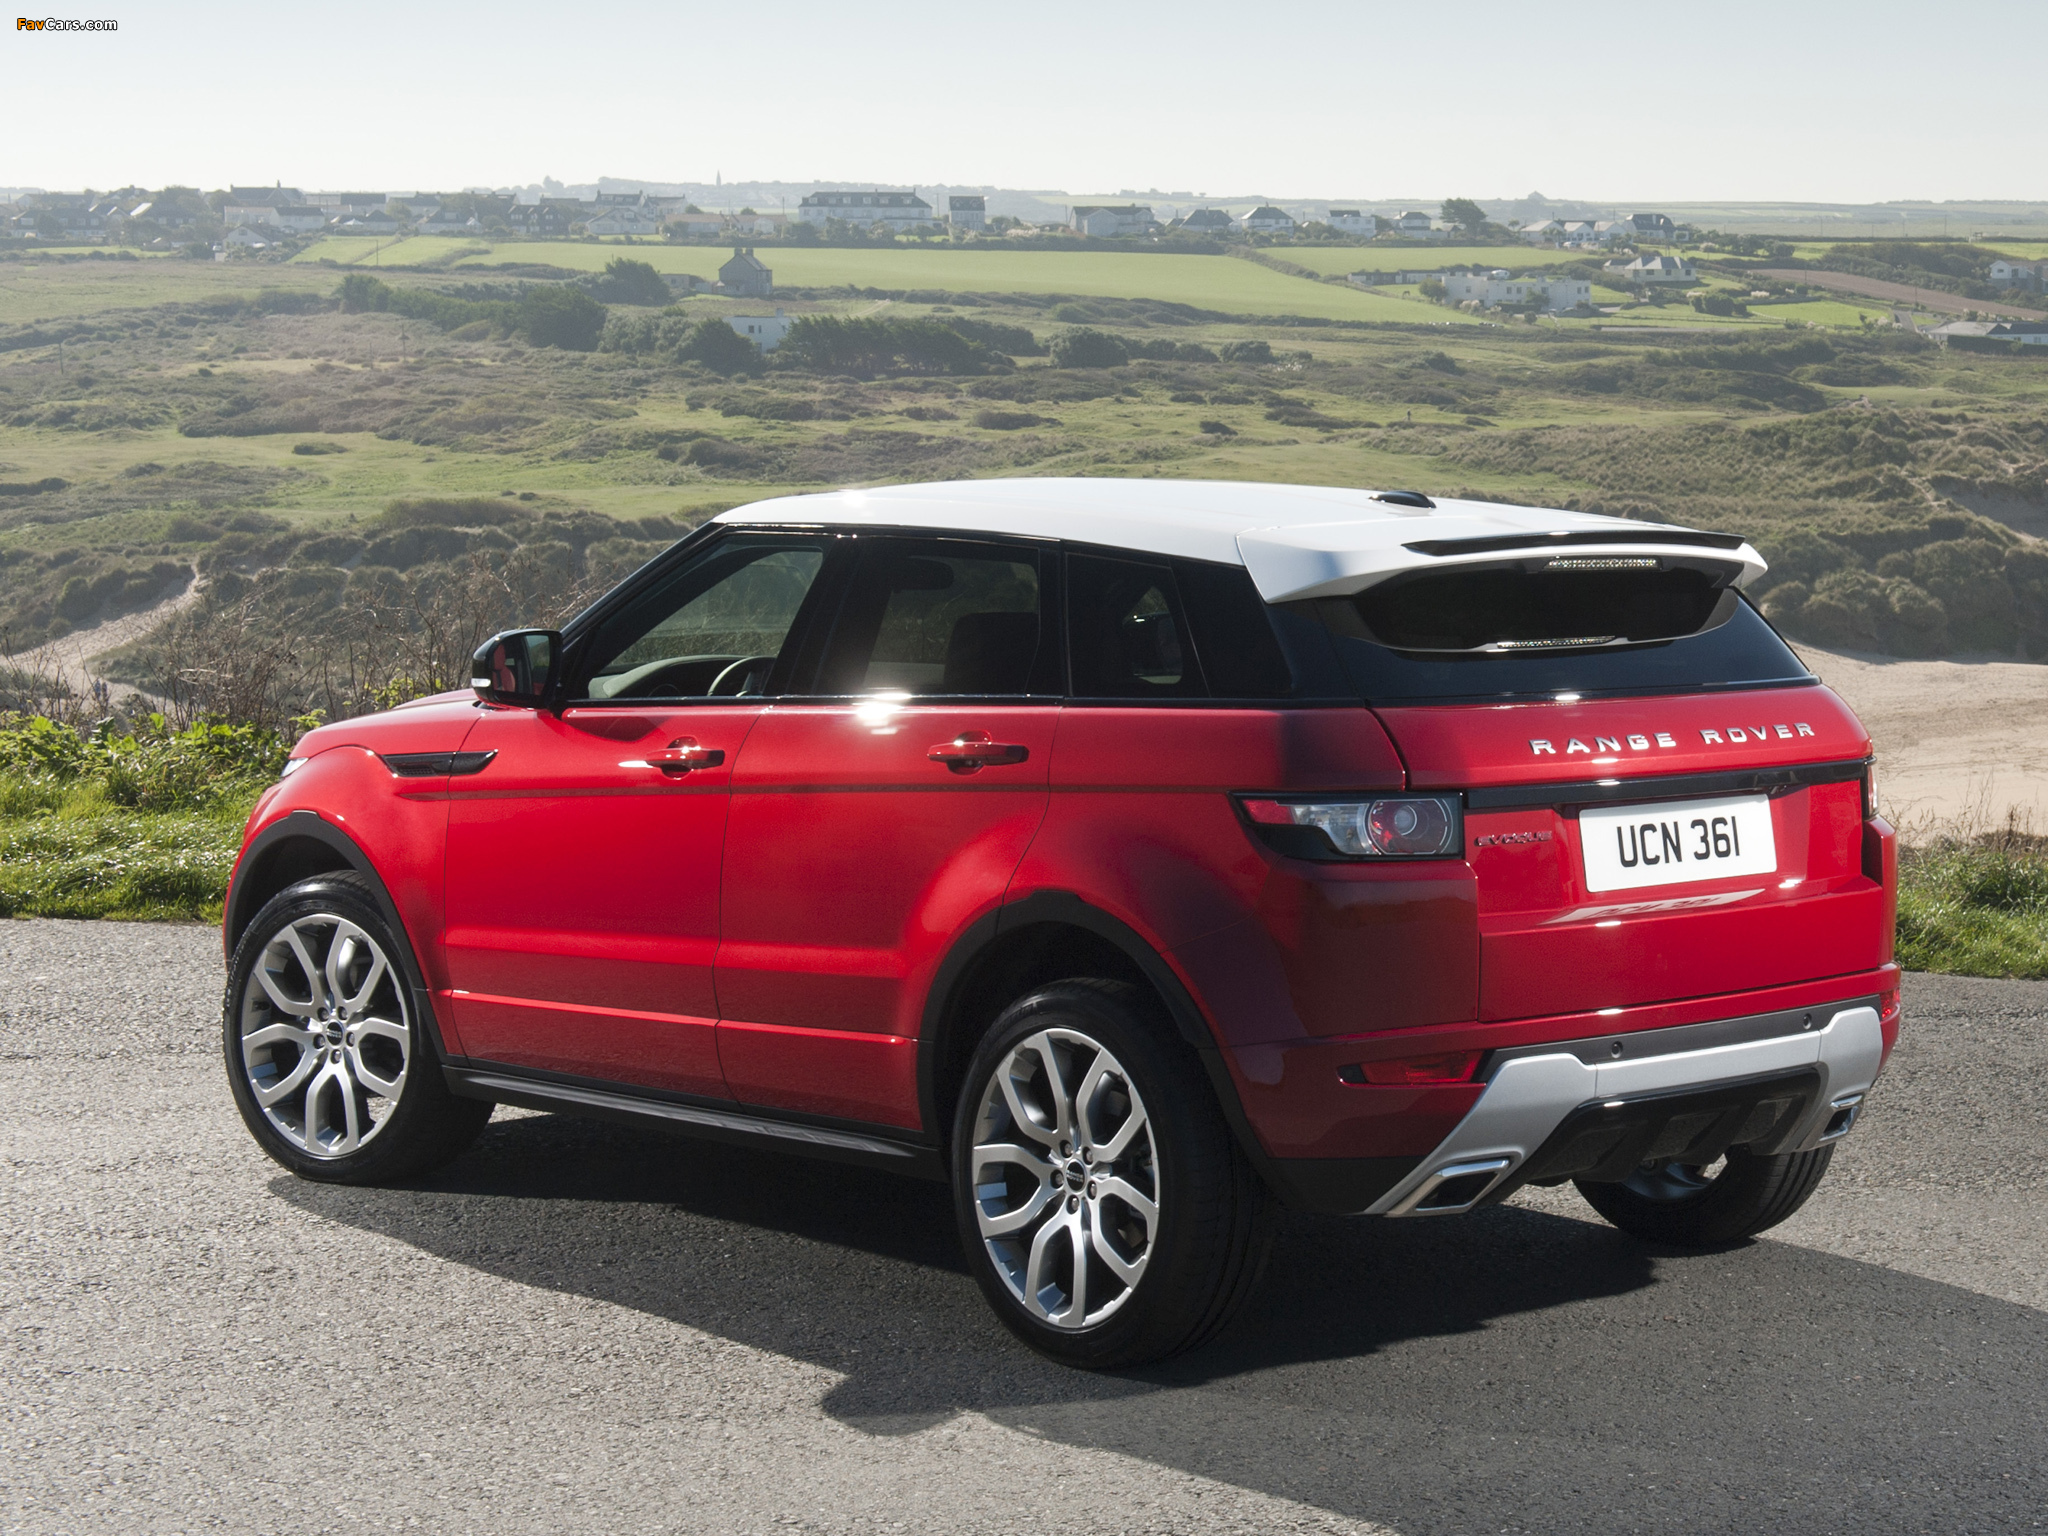 Land Rover Evoque Used